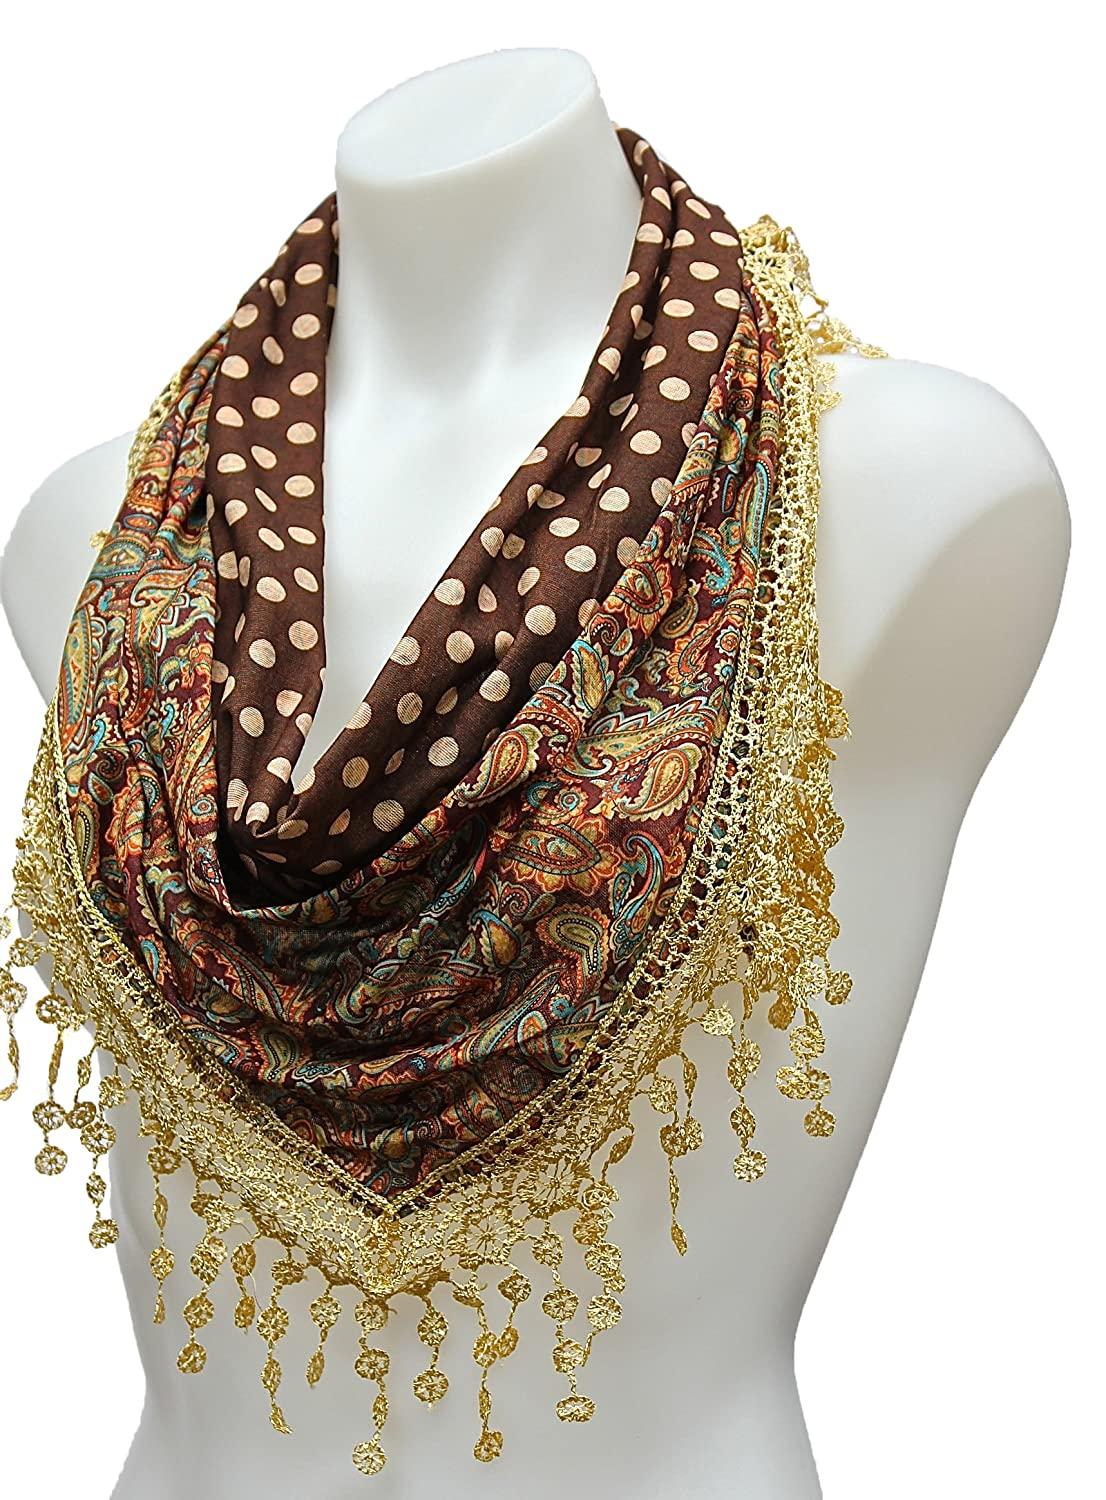 Terra Nomad Women's/Girls Double Sided Paisley Polka Dots Triangle Scarf w/ Lace Trim